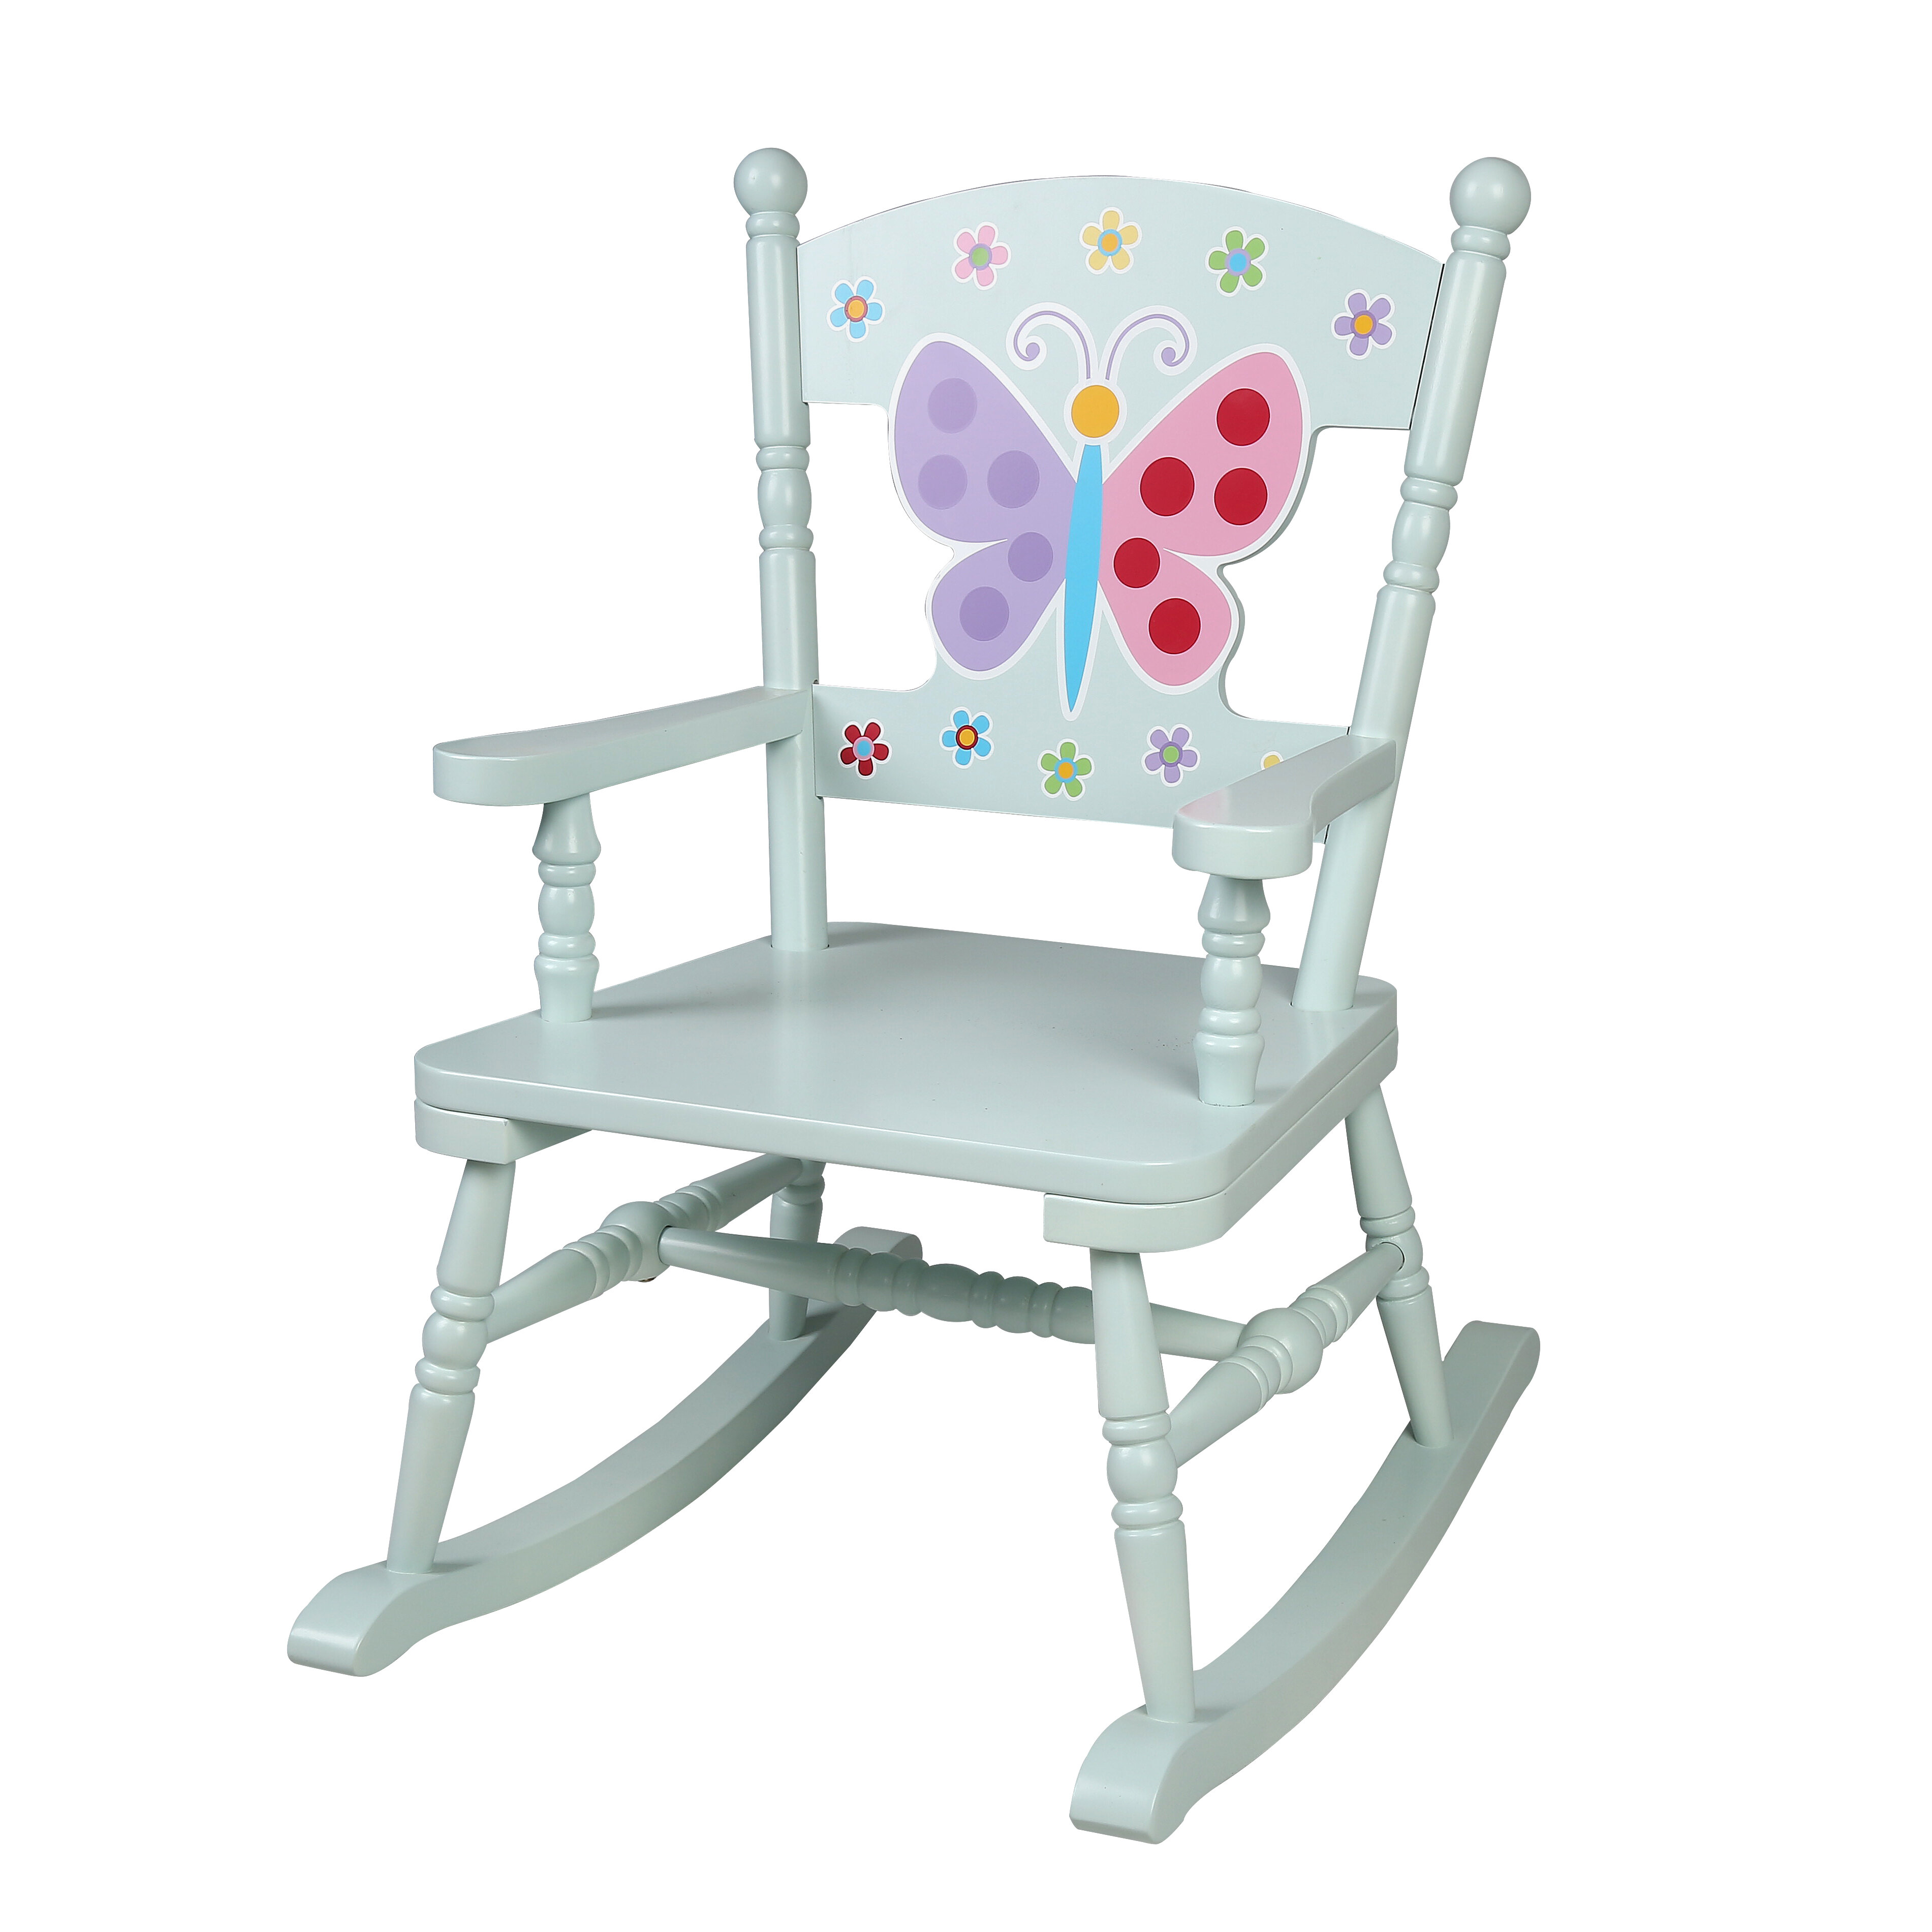 frog and rocking baby wayfair fantasy chair kids pdx reviews princess fields